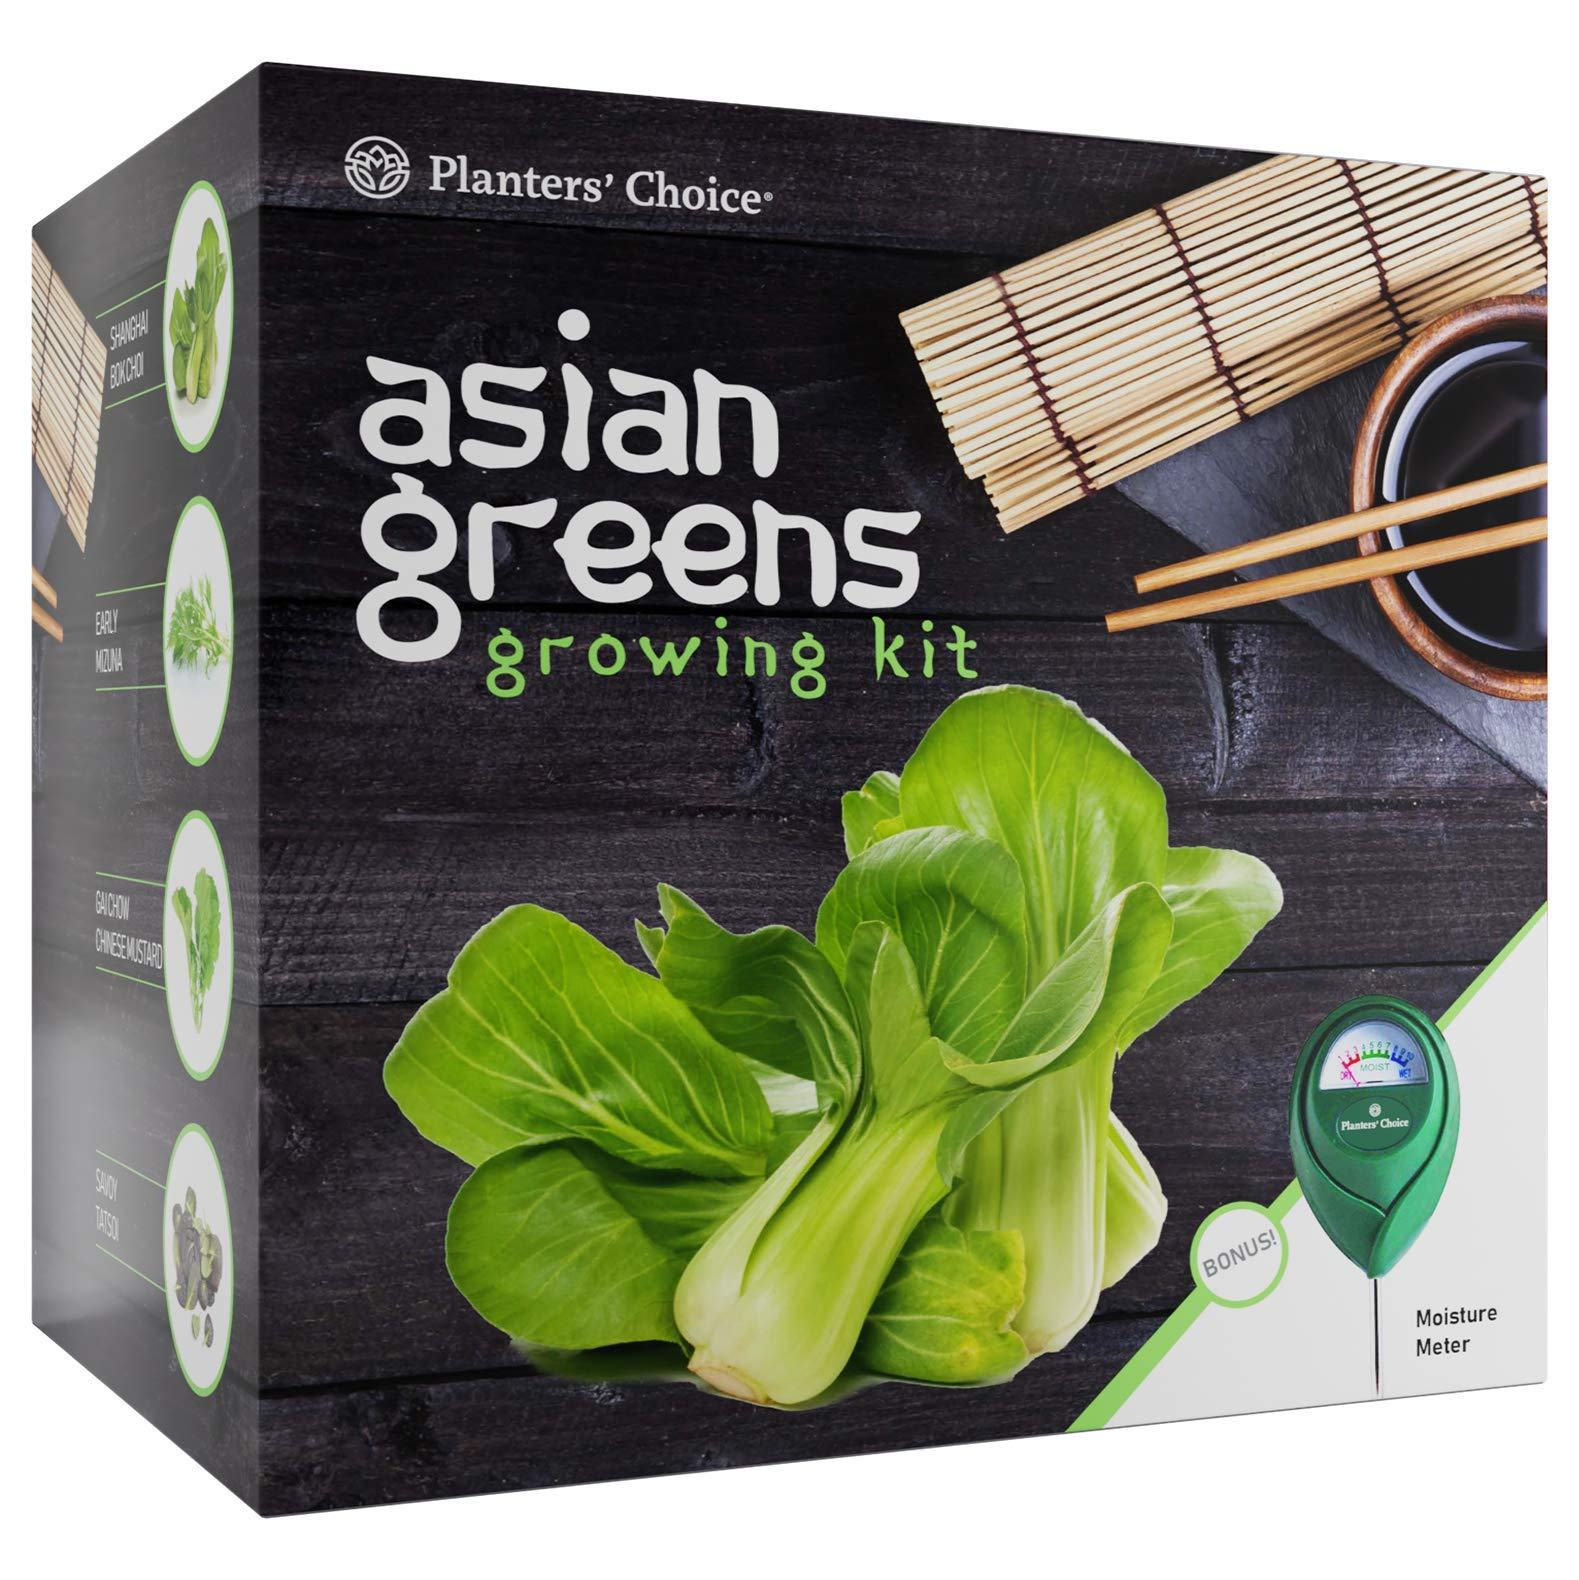 Asian Greens Growing Kit - Everything Included to Easily Grow 4 Traditional Asian Greens from Seed + Moisture Meter: Bok Choi, Mizuna, GAI Chow, Savoy Tatsoi